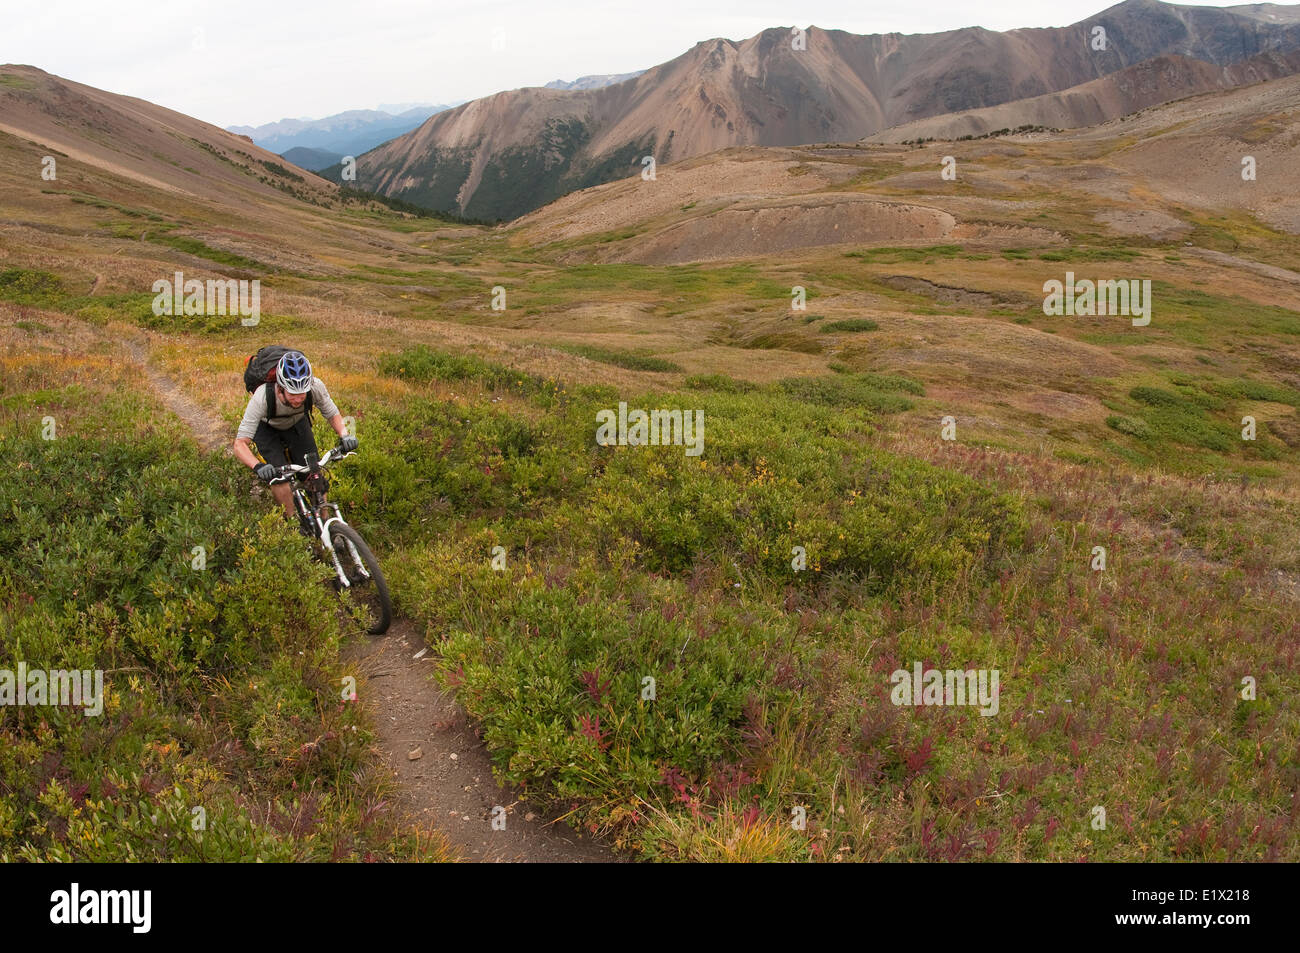 Mountain bike touring in Spruce Lake Protected Area. South Chilcotin Mountains. British Columbia, Canada - Stock Image